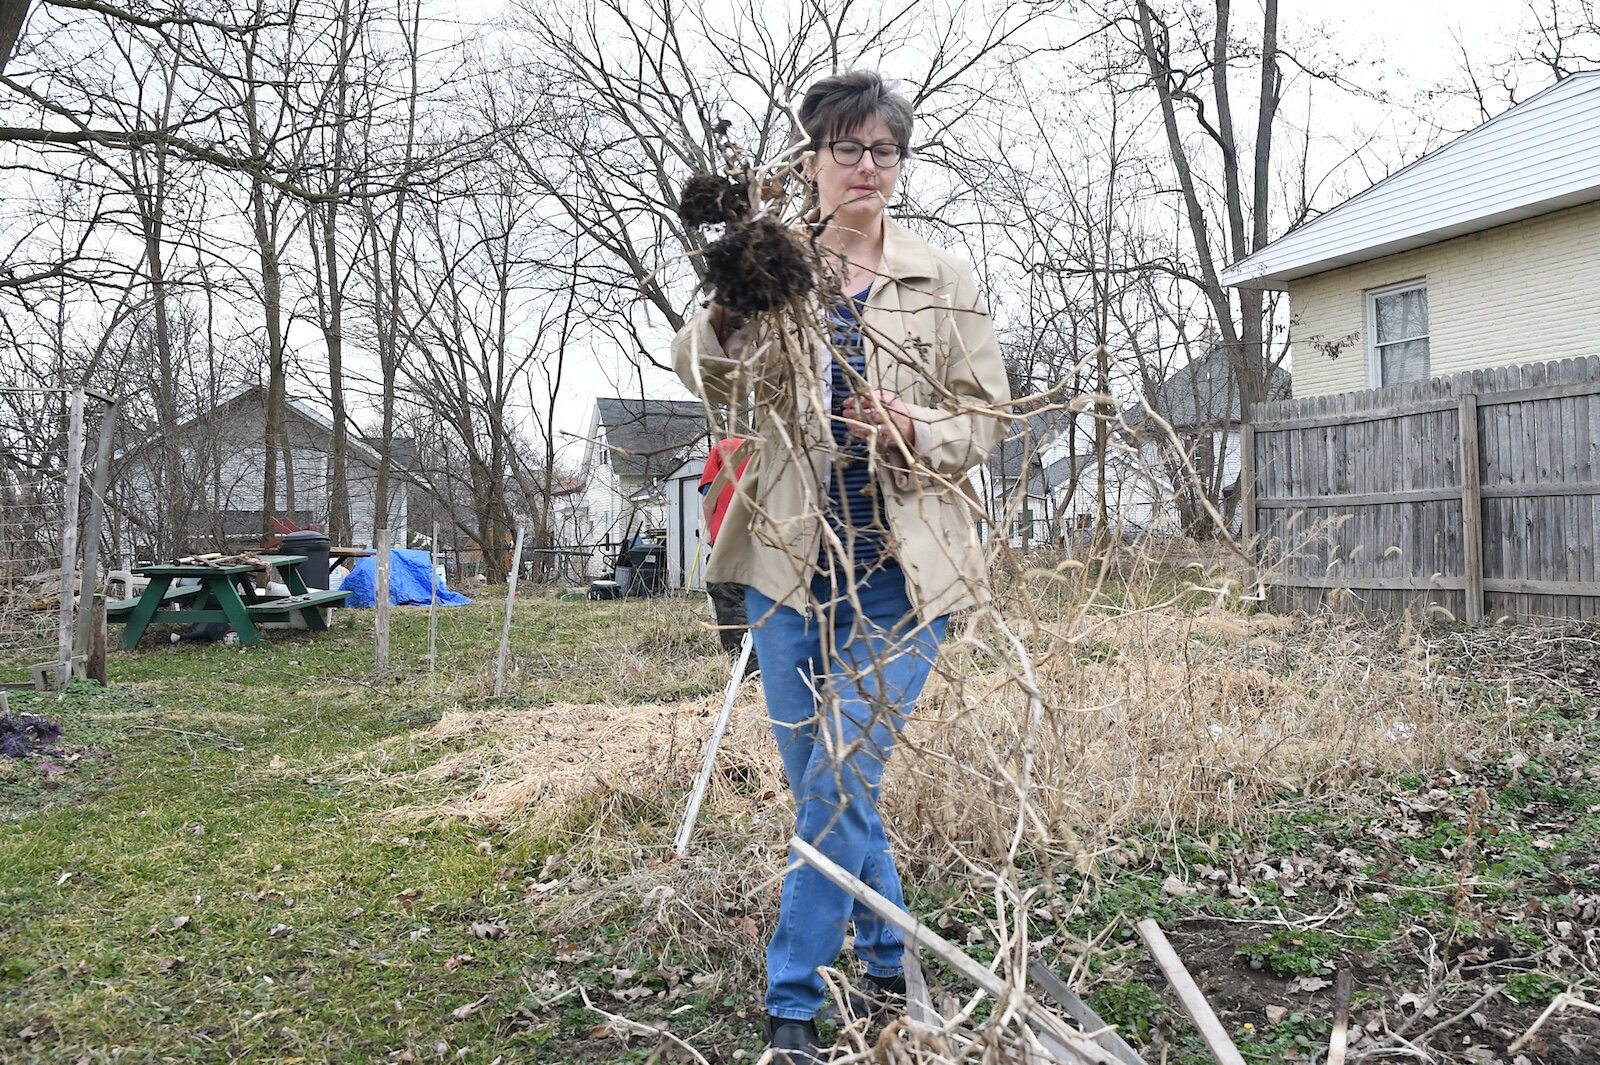 Jackie MacCannell cleans up refuse at the Fremont Garden.